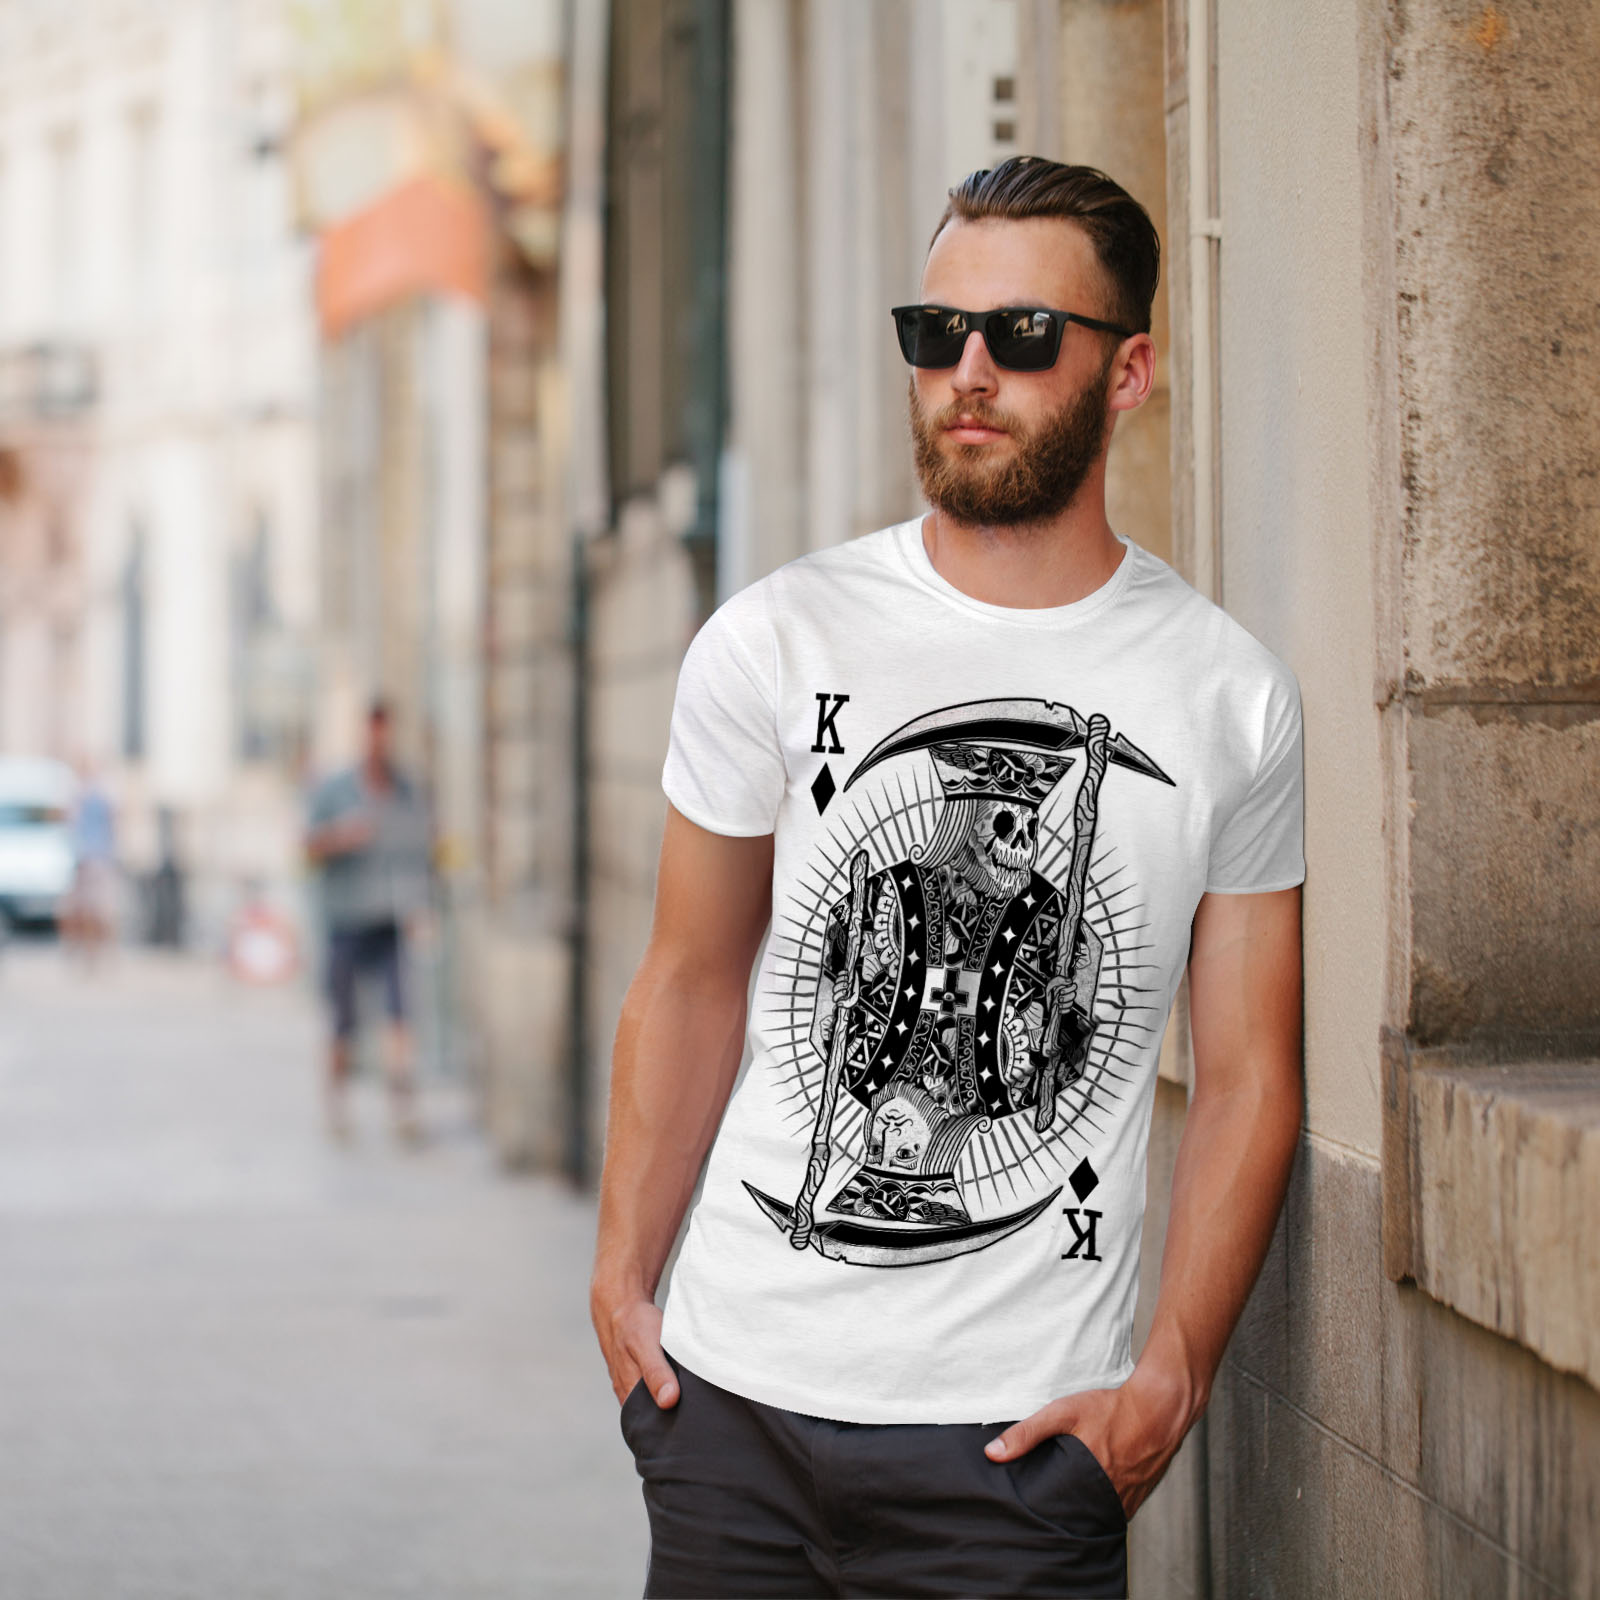 Wellcoda-Poker-Horror-King-Skull-Mens-T-shirt-Graphic-Design-Printed-Tee thumbnail 11